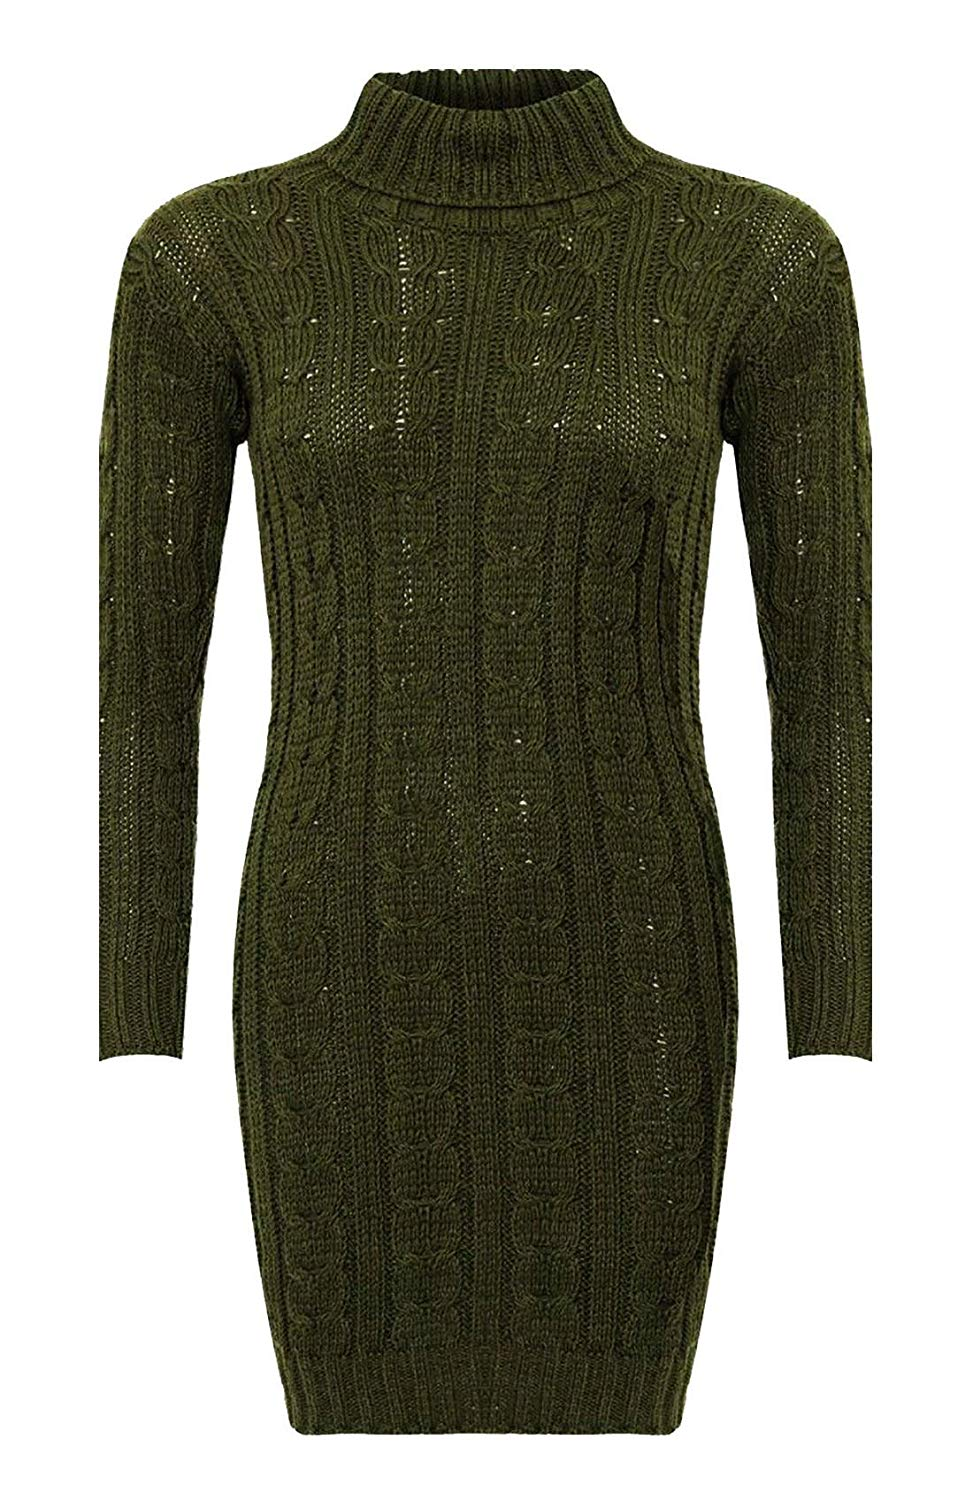 Rimi Hanger Womens Polo Neck Cable Knitted Bodycon Dress Ladies Long Sleeve Jumper Dress S, M, L